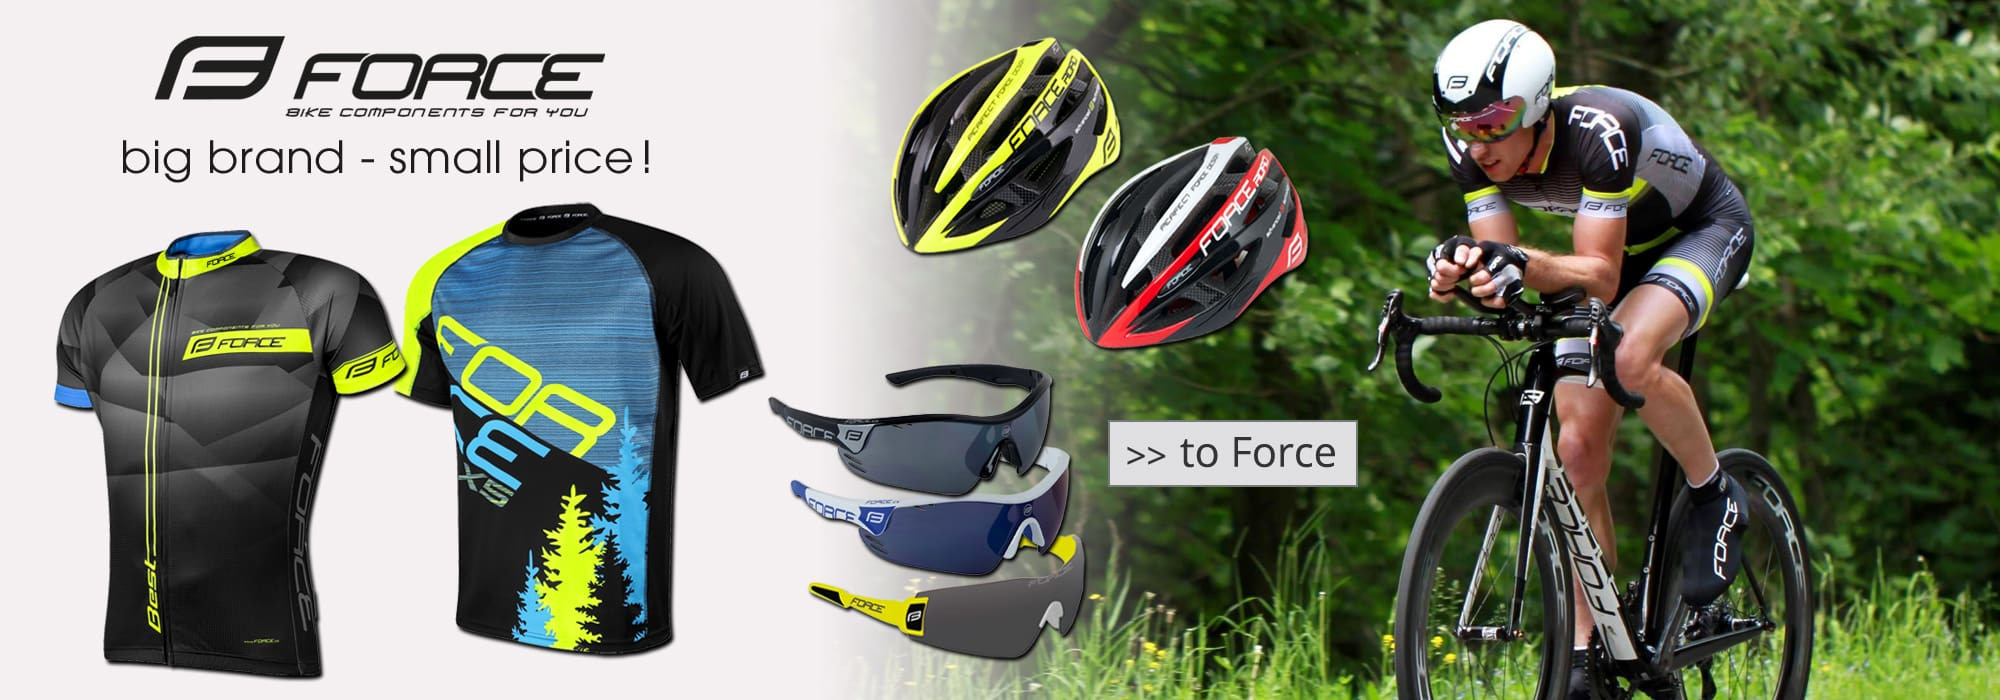 Force cycling wear & accessories